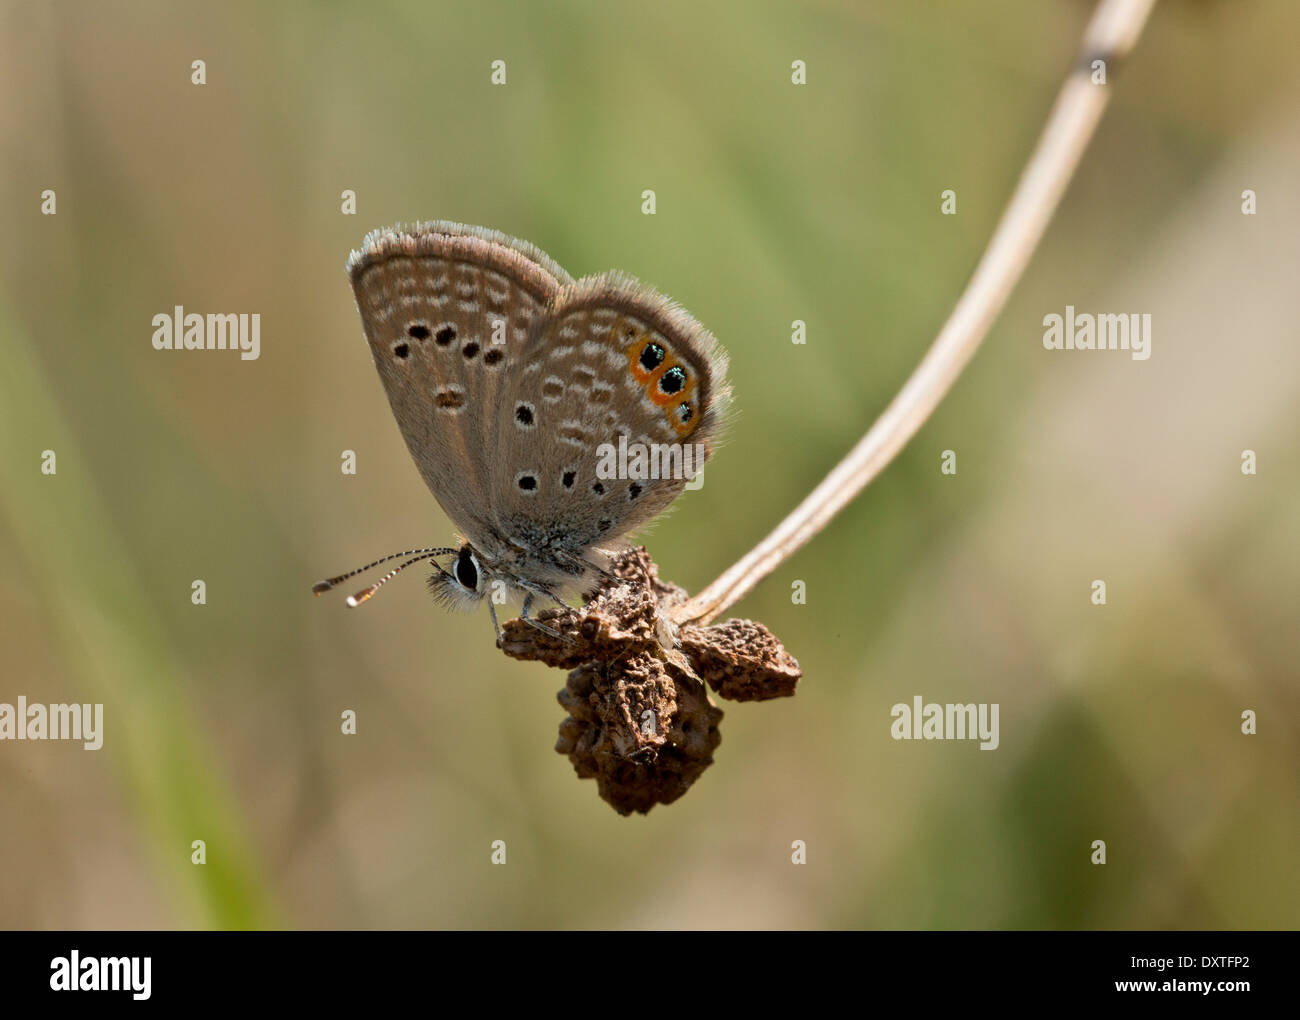 Grass Jewel butterfly Chilades trochylus in spring; Cyprus - Stock Image